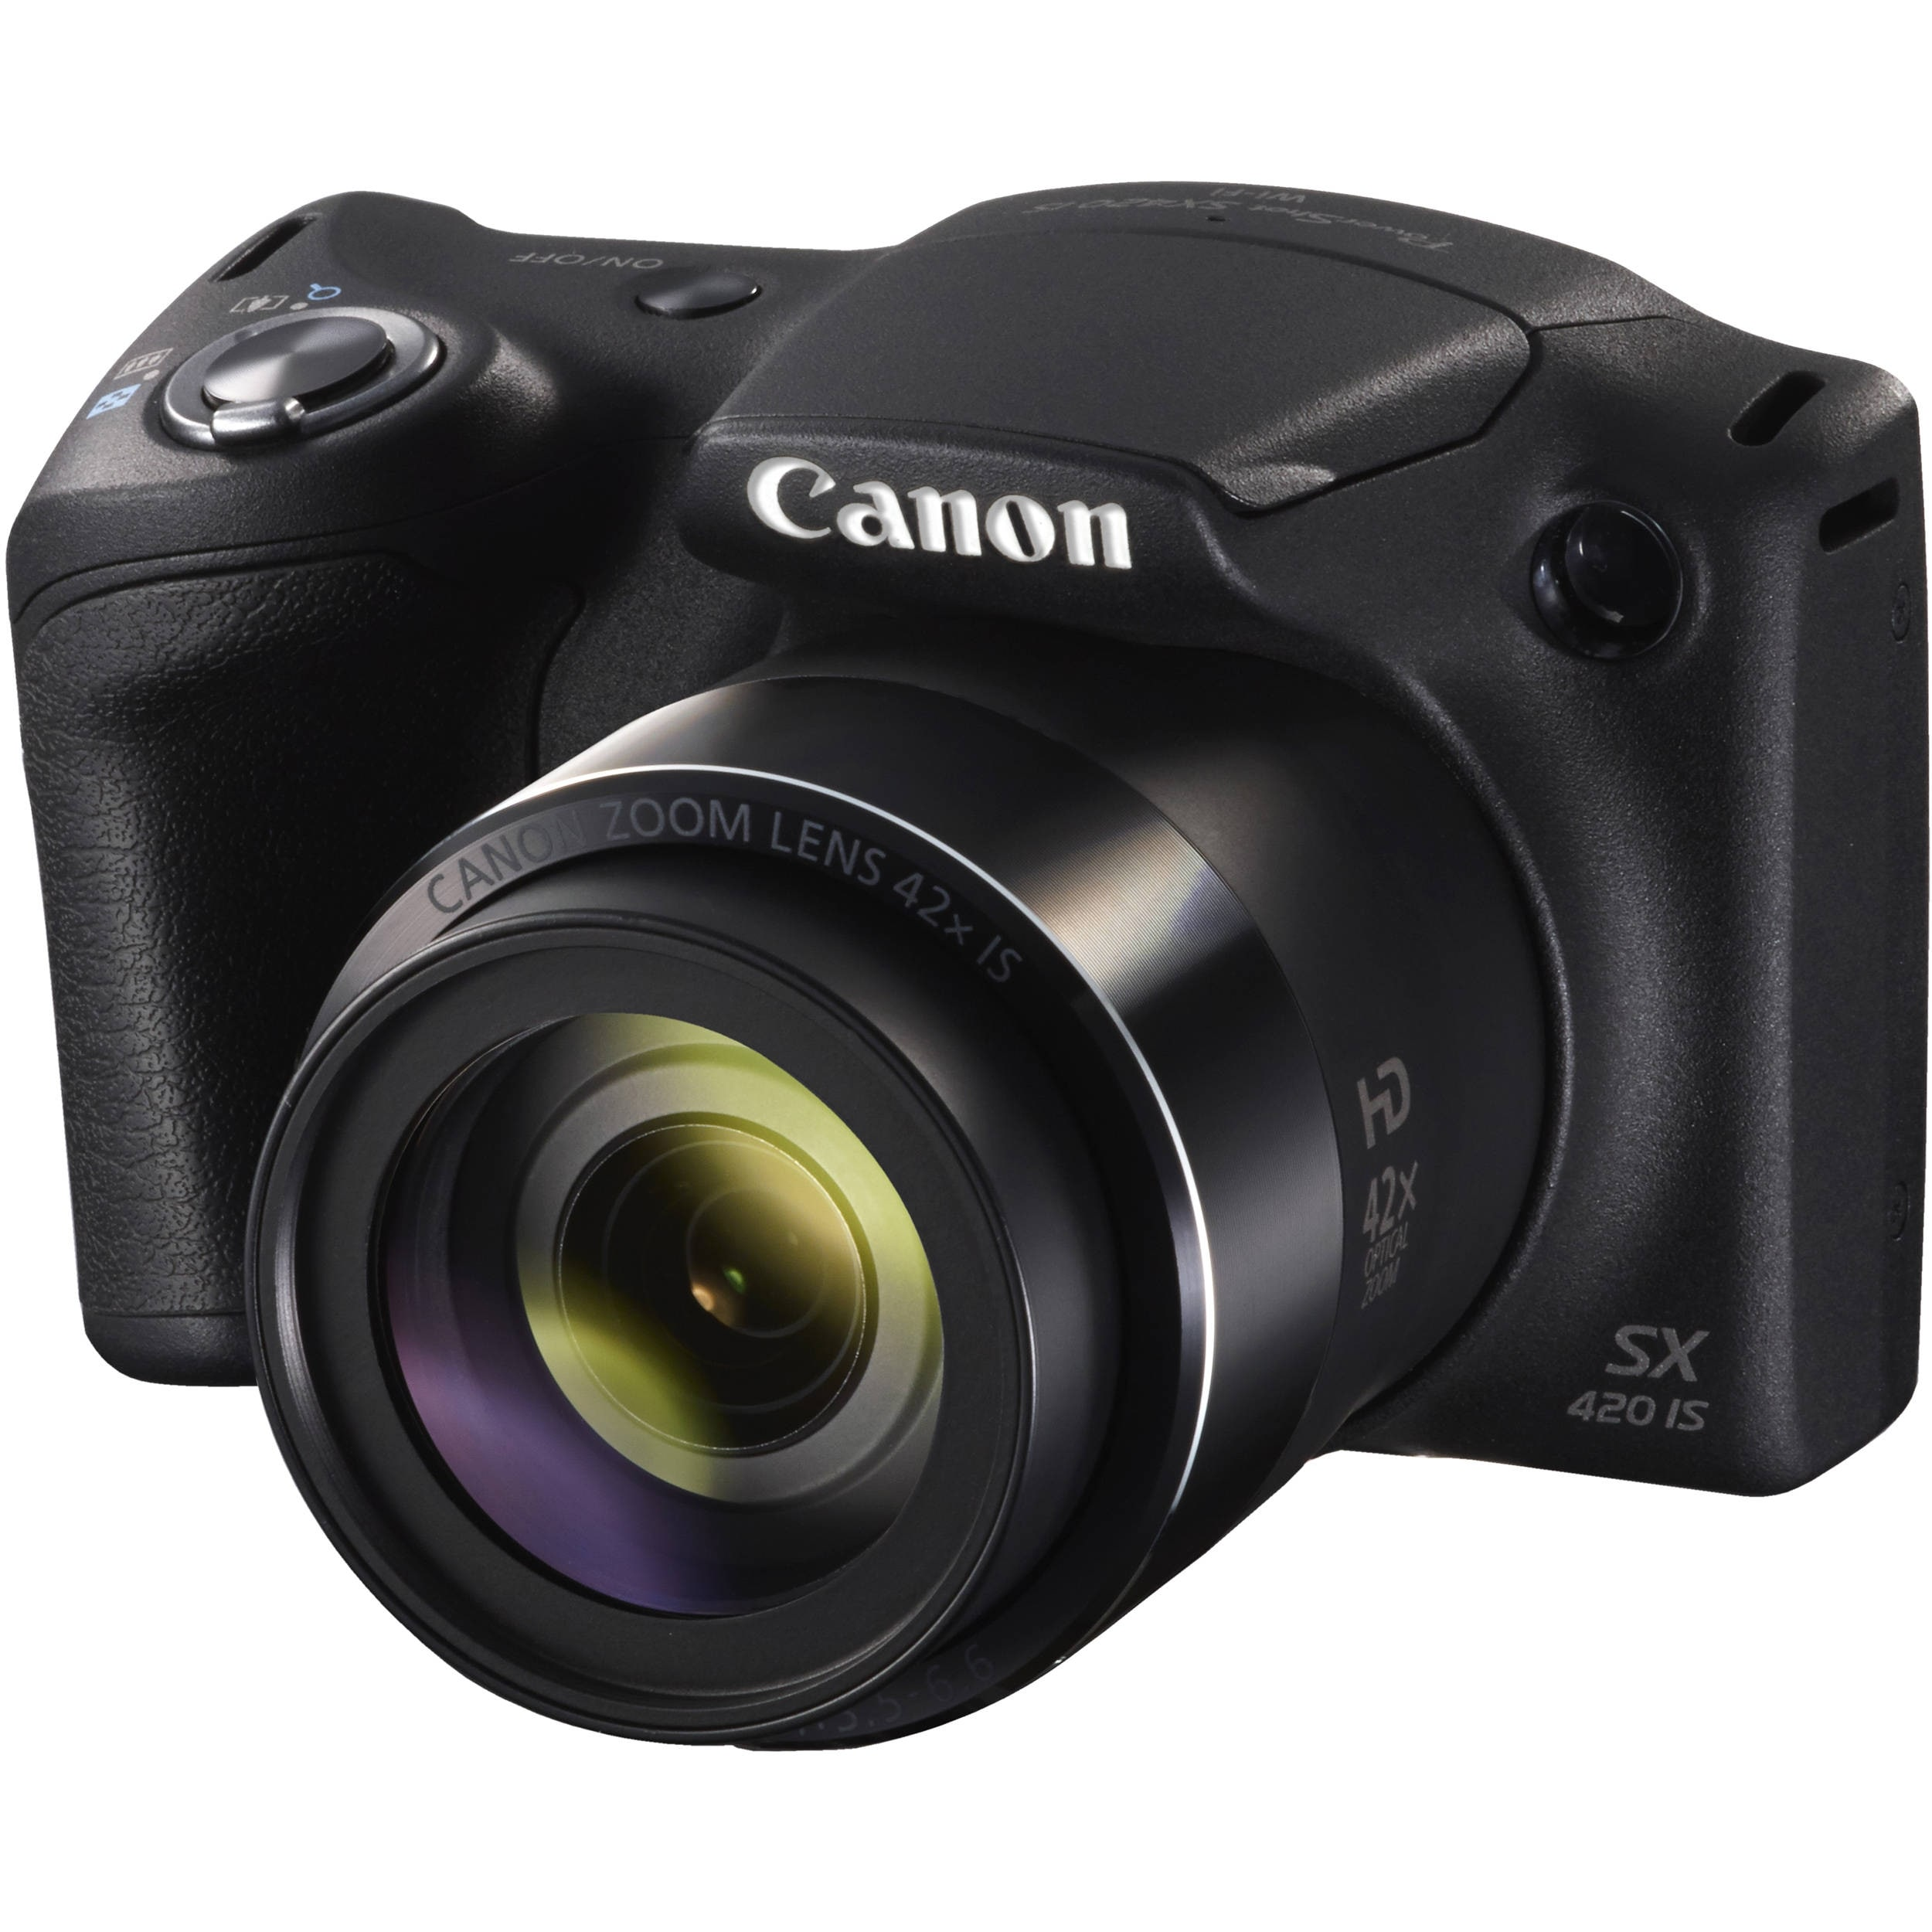 43ce180f7 Shop Canon PowerShot SX420 IS Digital Camera Bundle (Intl Model) - Free  Shipping Today - Overstock - 21469403